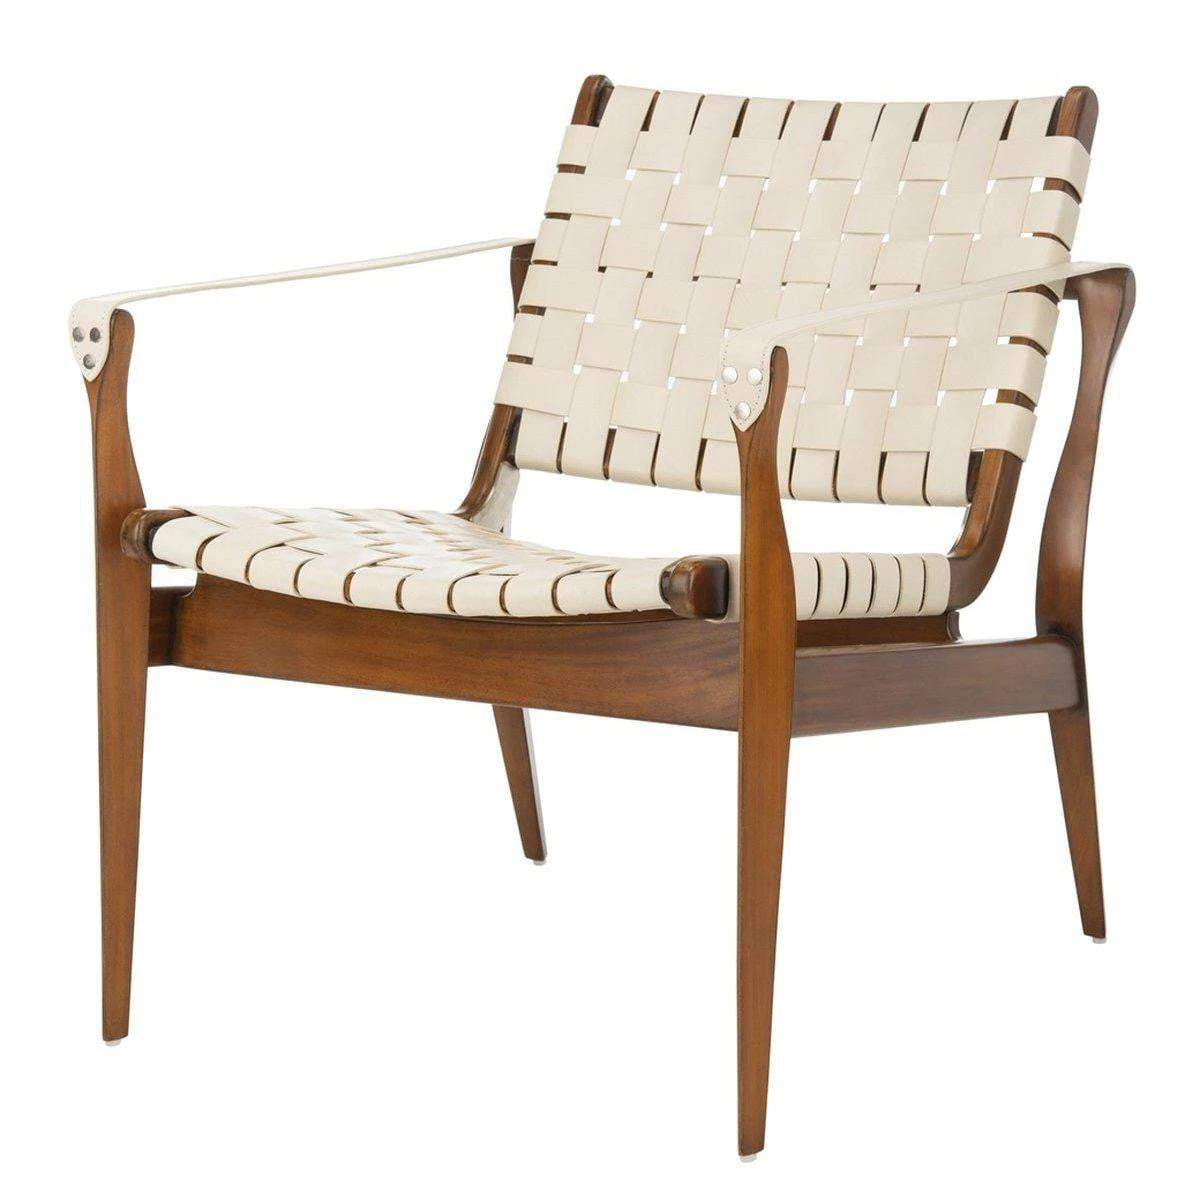 Dilan Leather Safari Accent Chair (White / Light Brown)